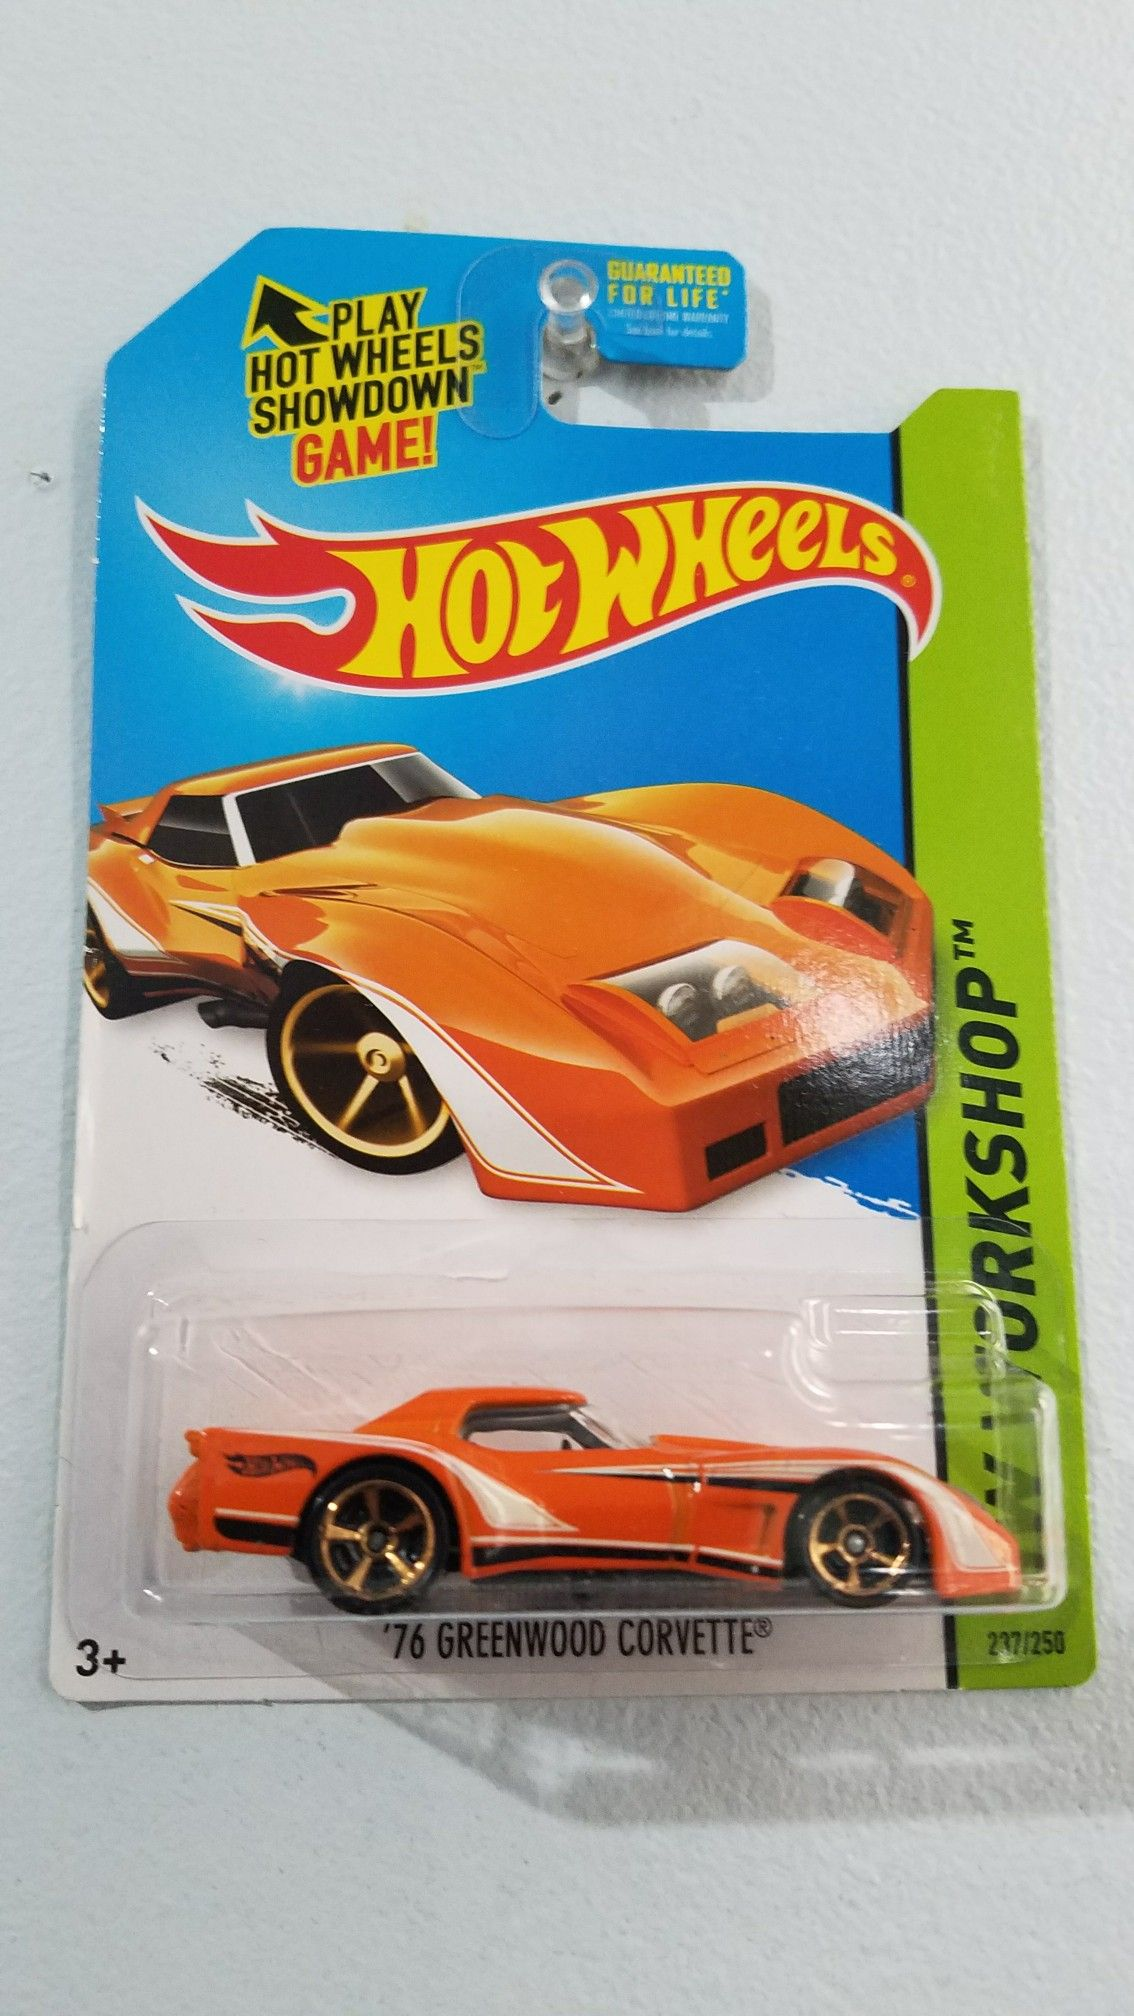 Hot Wheels 1976 Greenwood Corvette Brought To You By Smart E Hot Wheels Hot Wheels Cars Hot Wheel Projects